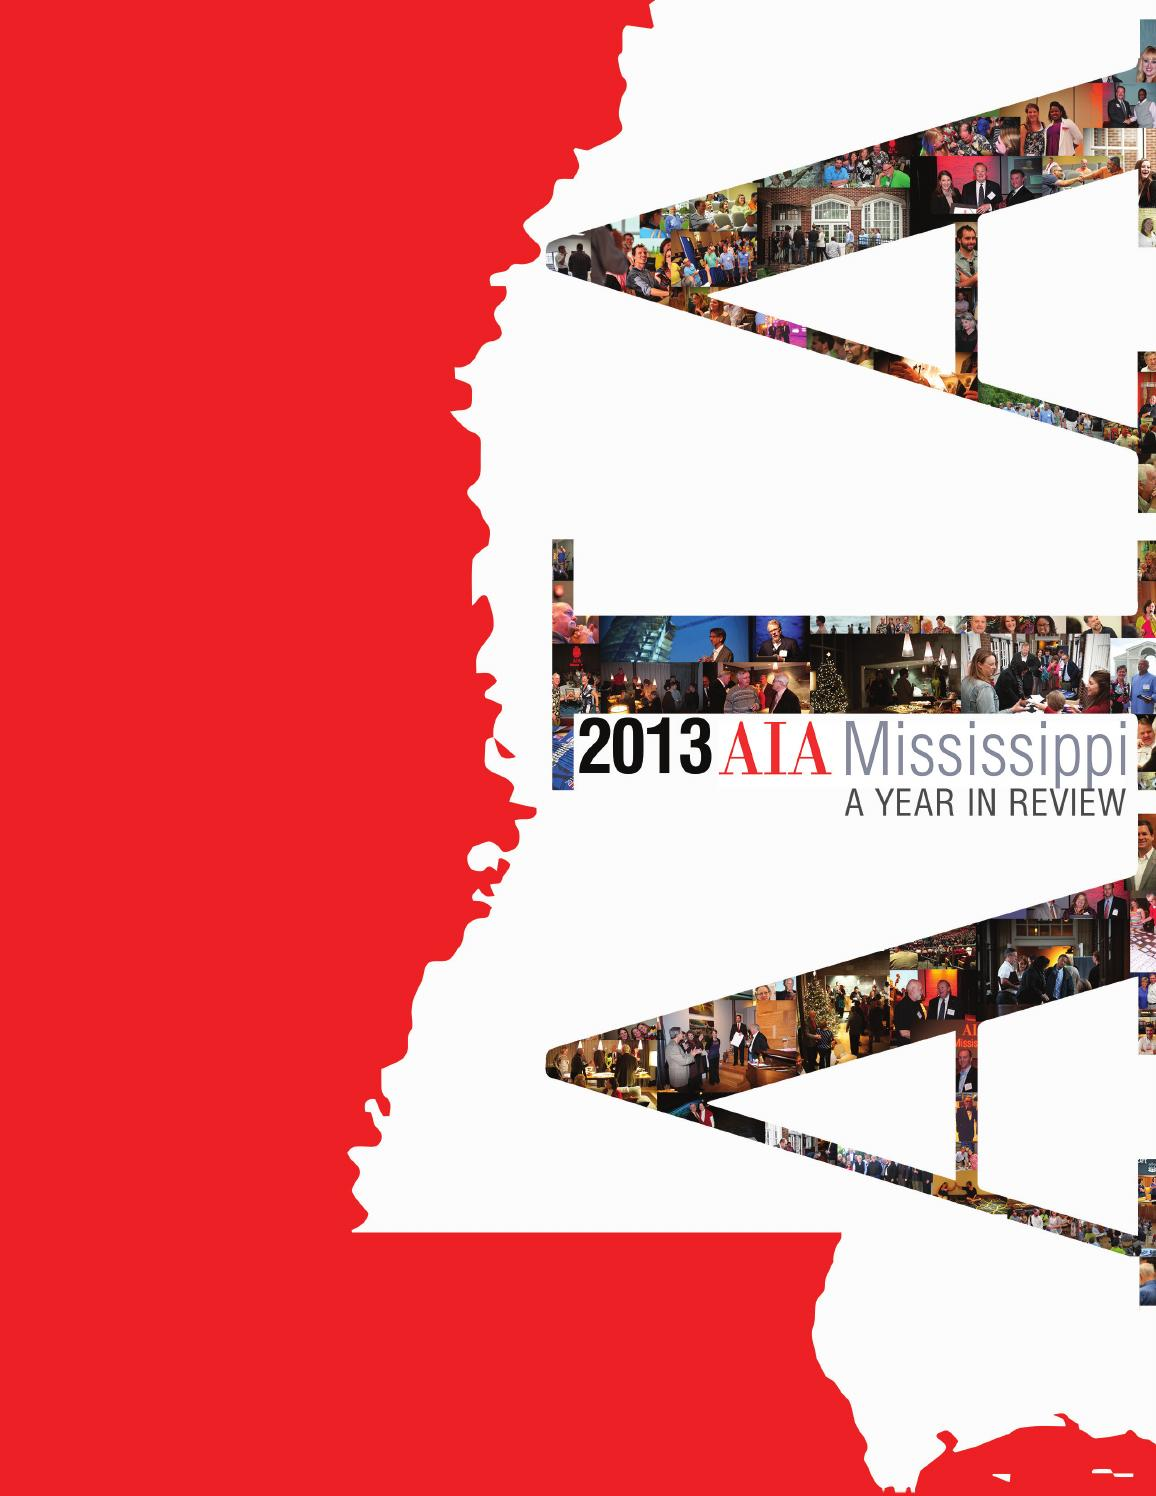 2013 AIA Mississippi Year In Review By